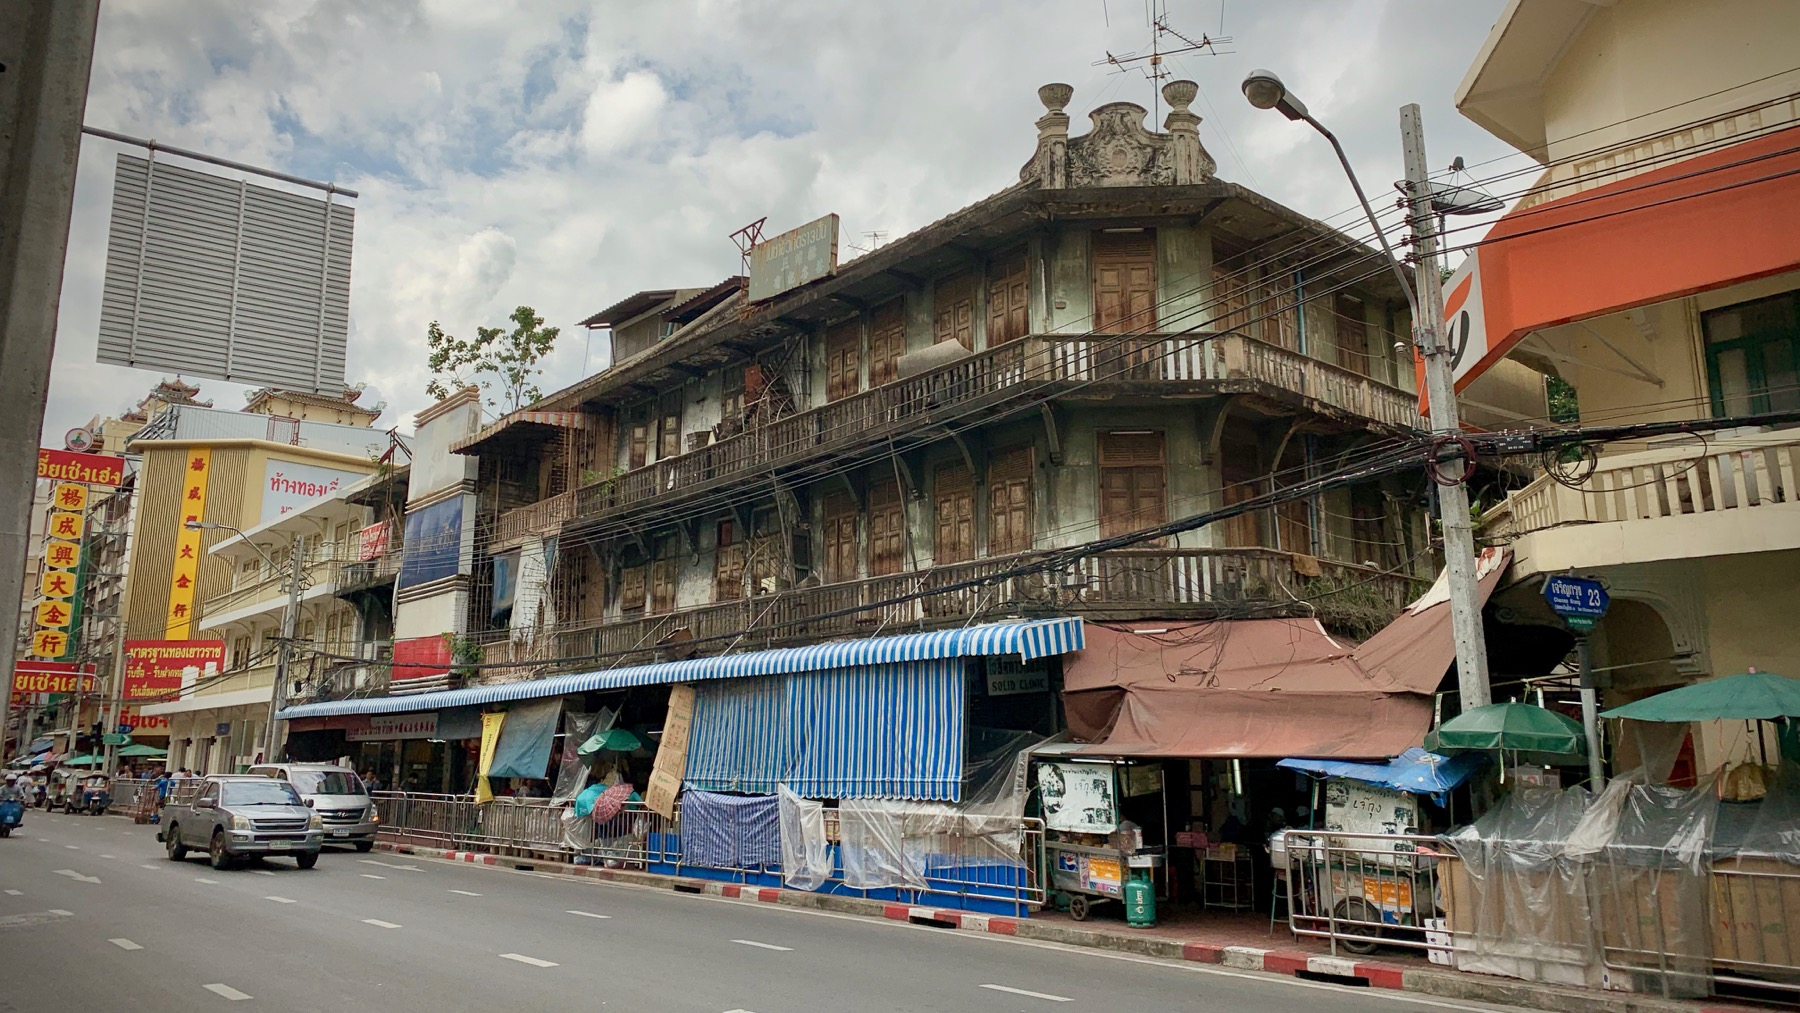 Urban Decay in Bangkok's Chinatown